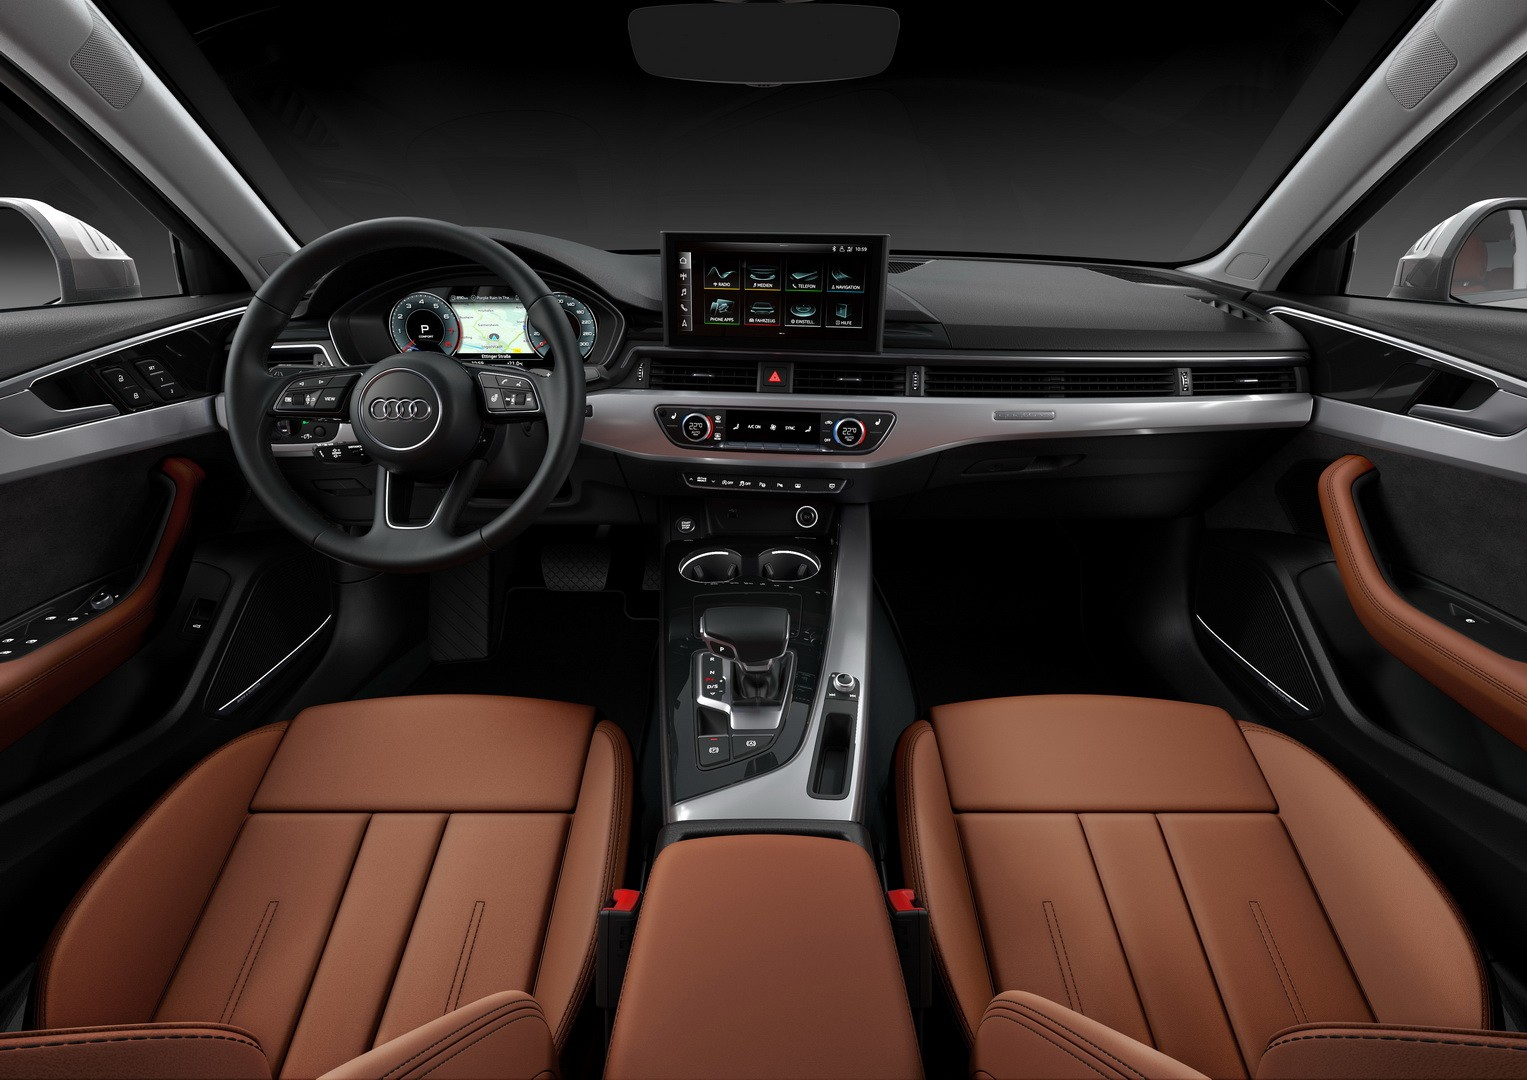 all-new-2023-audi-a4-wont-go-full-ev-just-yet-will-stick-with-gasoline-and-diesel-power_4.jpg